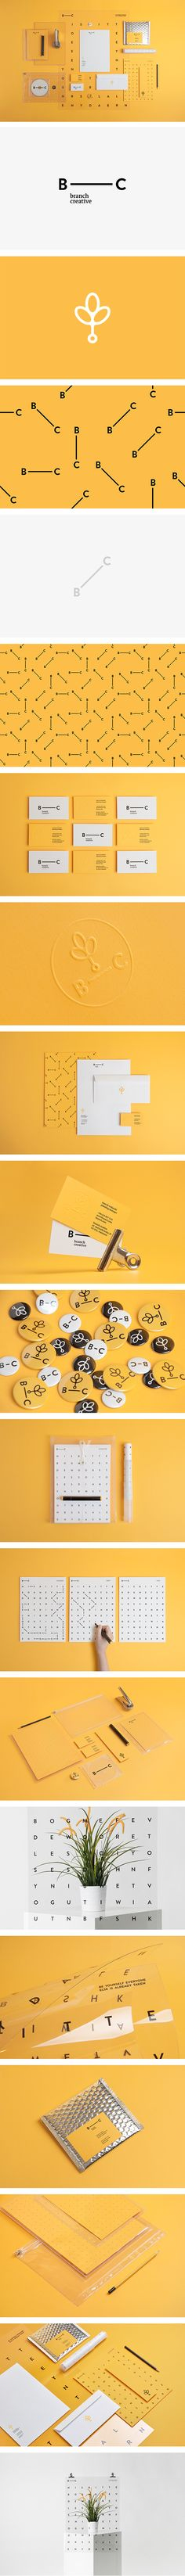 B_______C Exciting and interactive branding idea